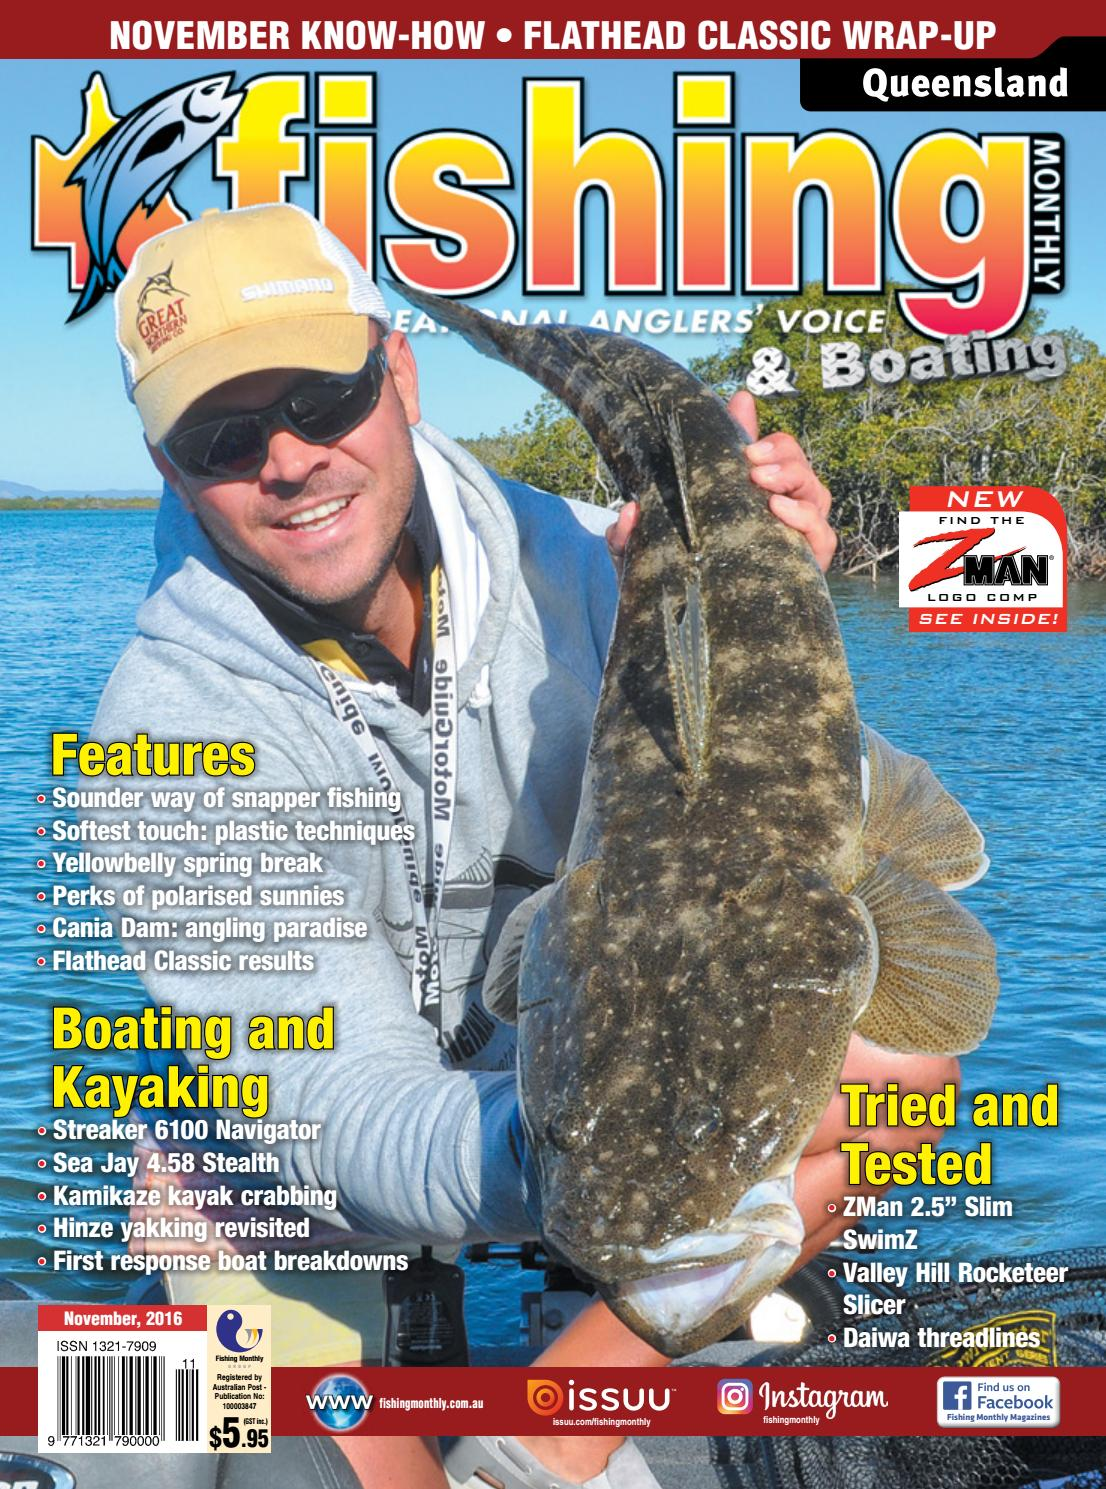 e3f974ed7c Queensland Fishing Monthly November 2016 by Fishing Monthly - issuu